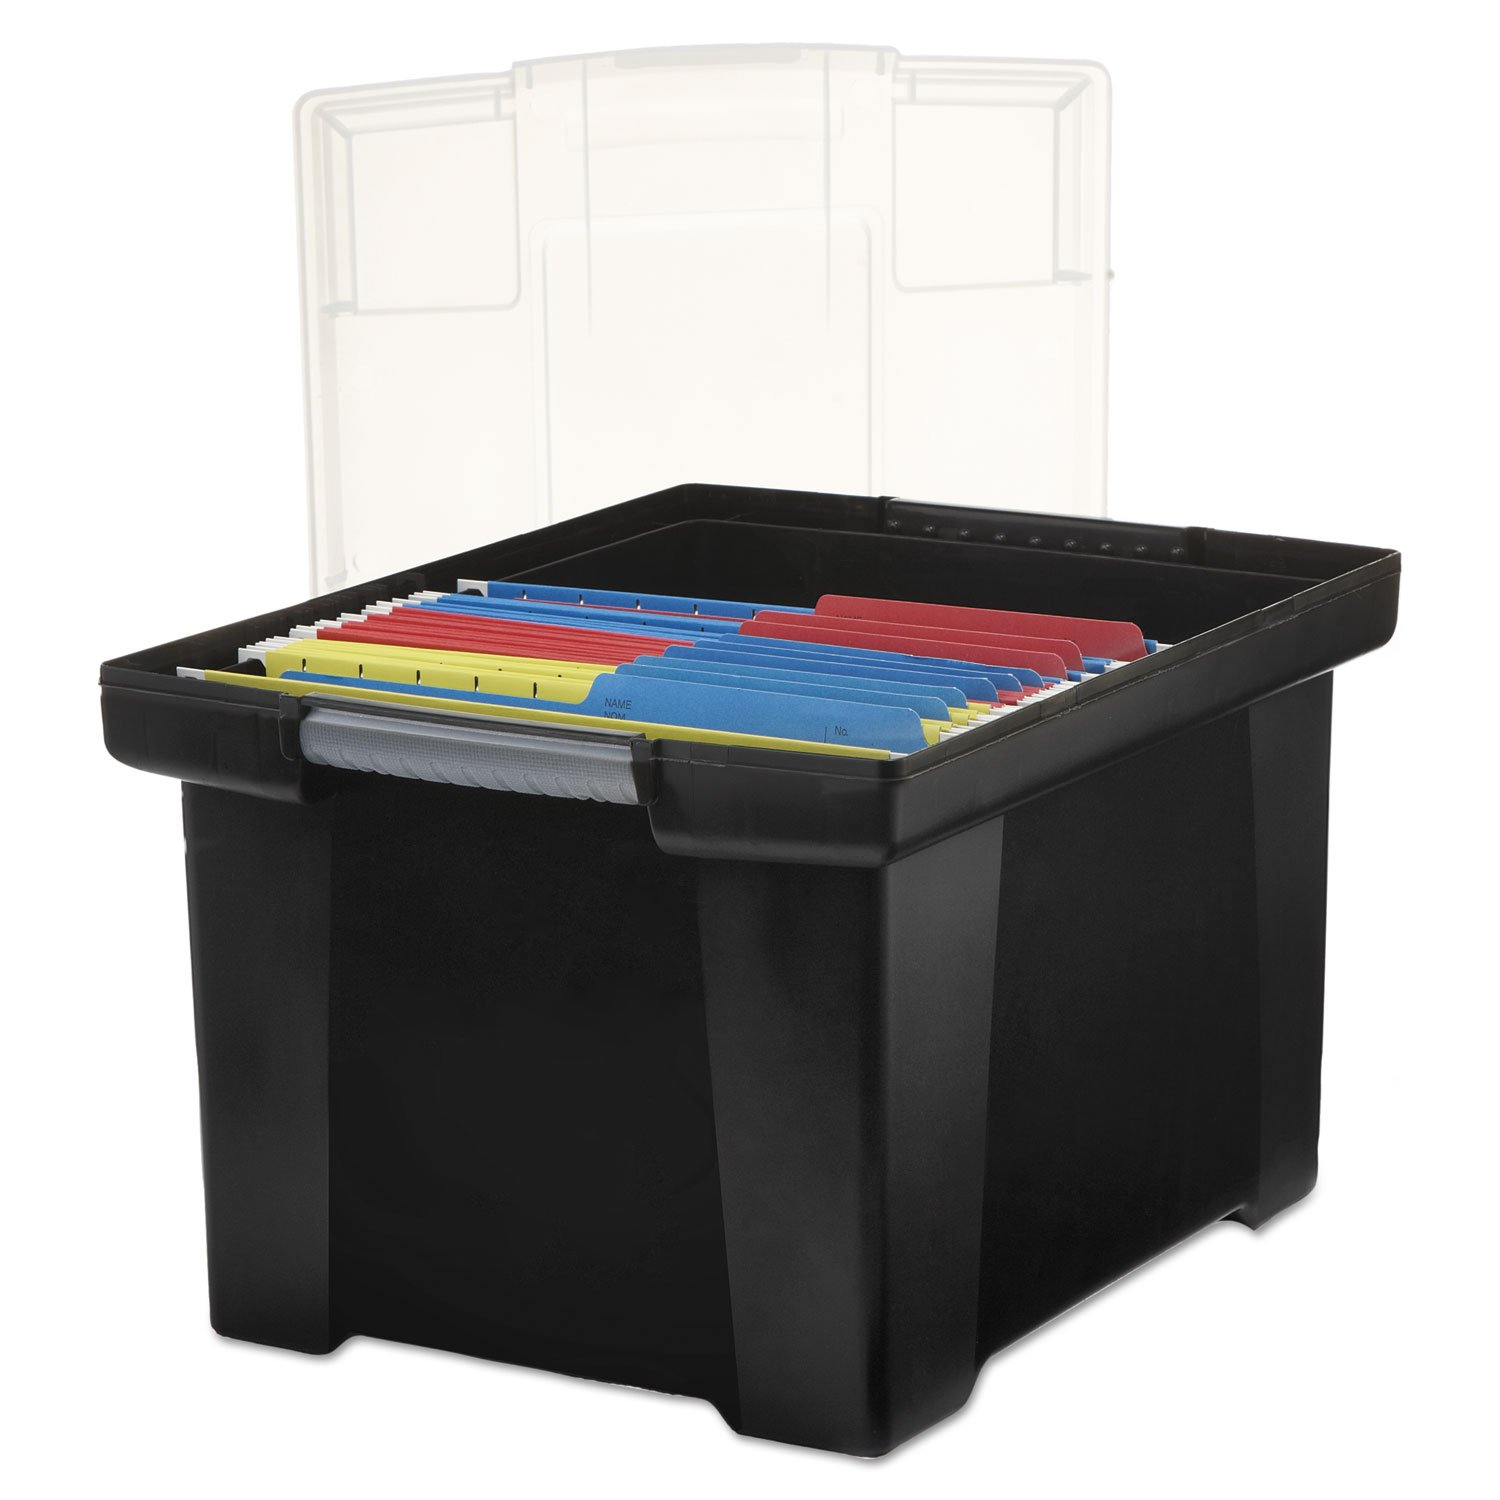 Storex 61528U01C Plastic File Tote Storage Box Letter/Legal Snap-On Lid Black